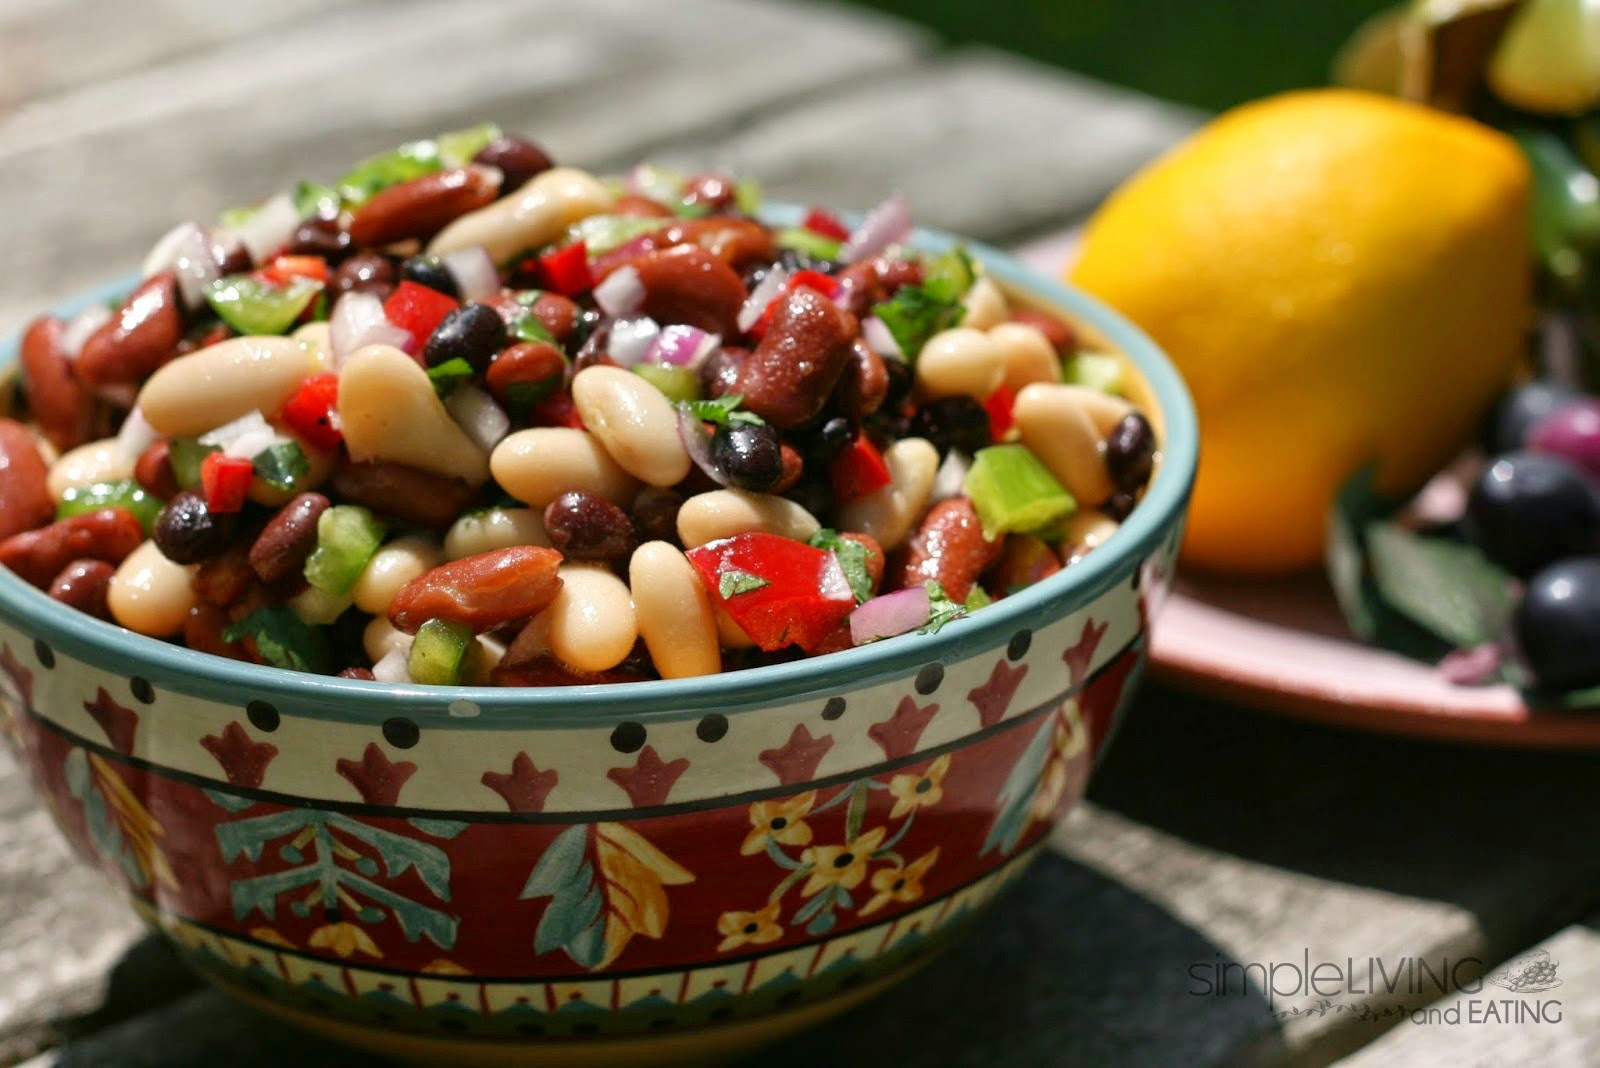 three bean salad: simplelivingeating.com